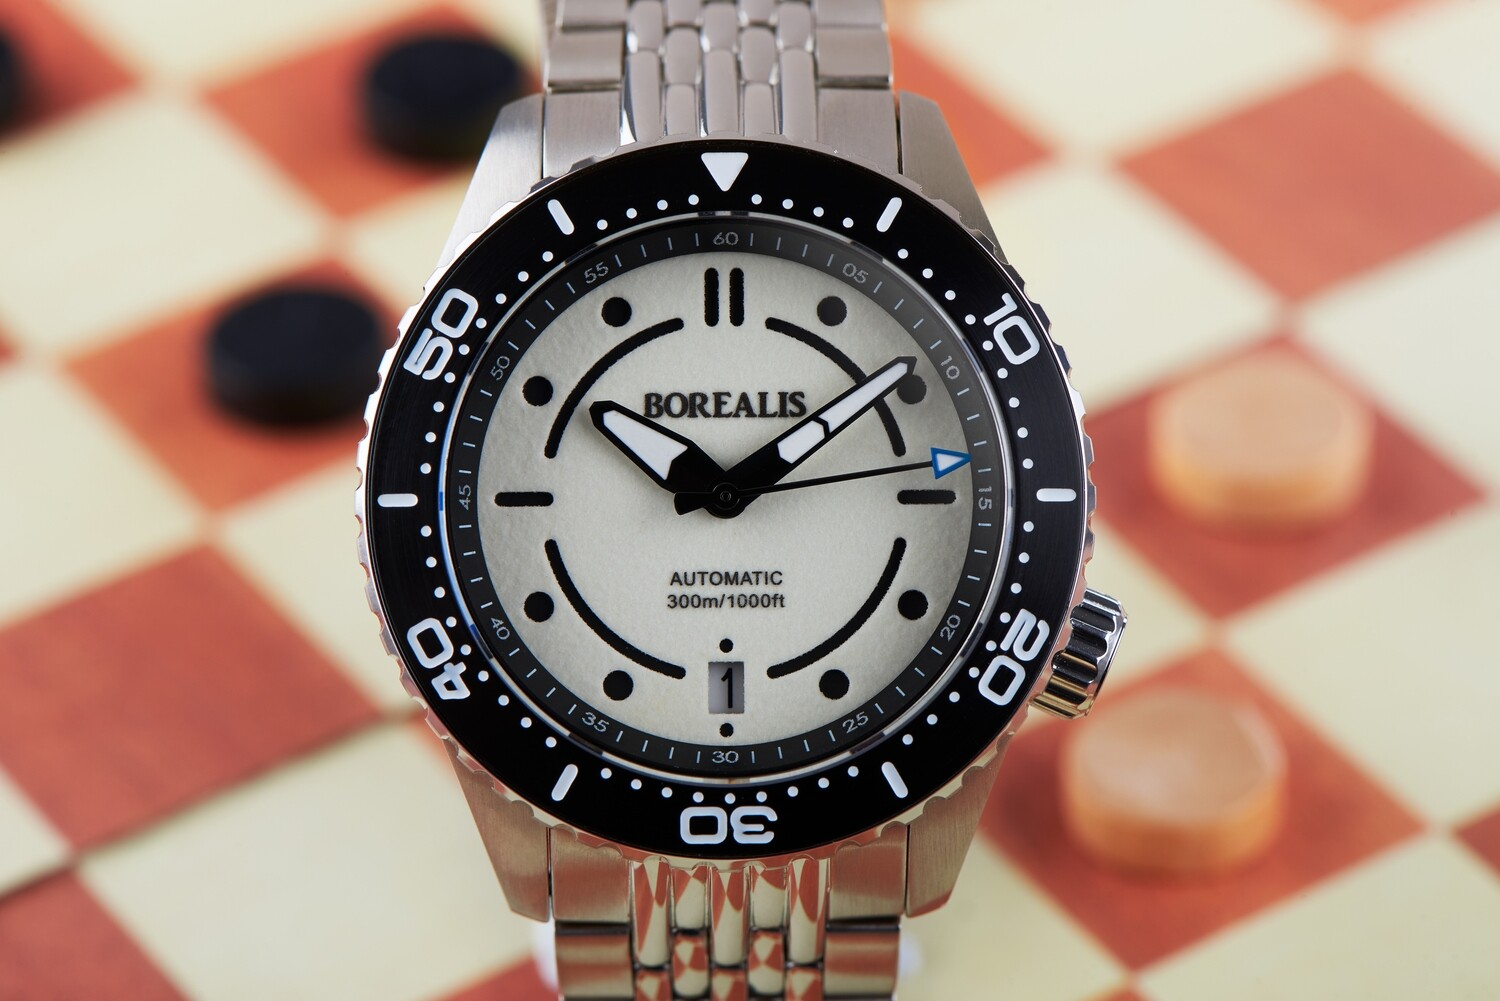 Pre-Order Borealis Neptuno Lumed White Dial Date NH35 Automatic Movement 300m Diver Watch